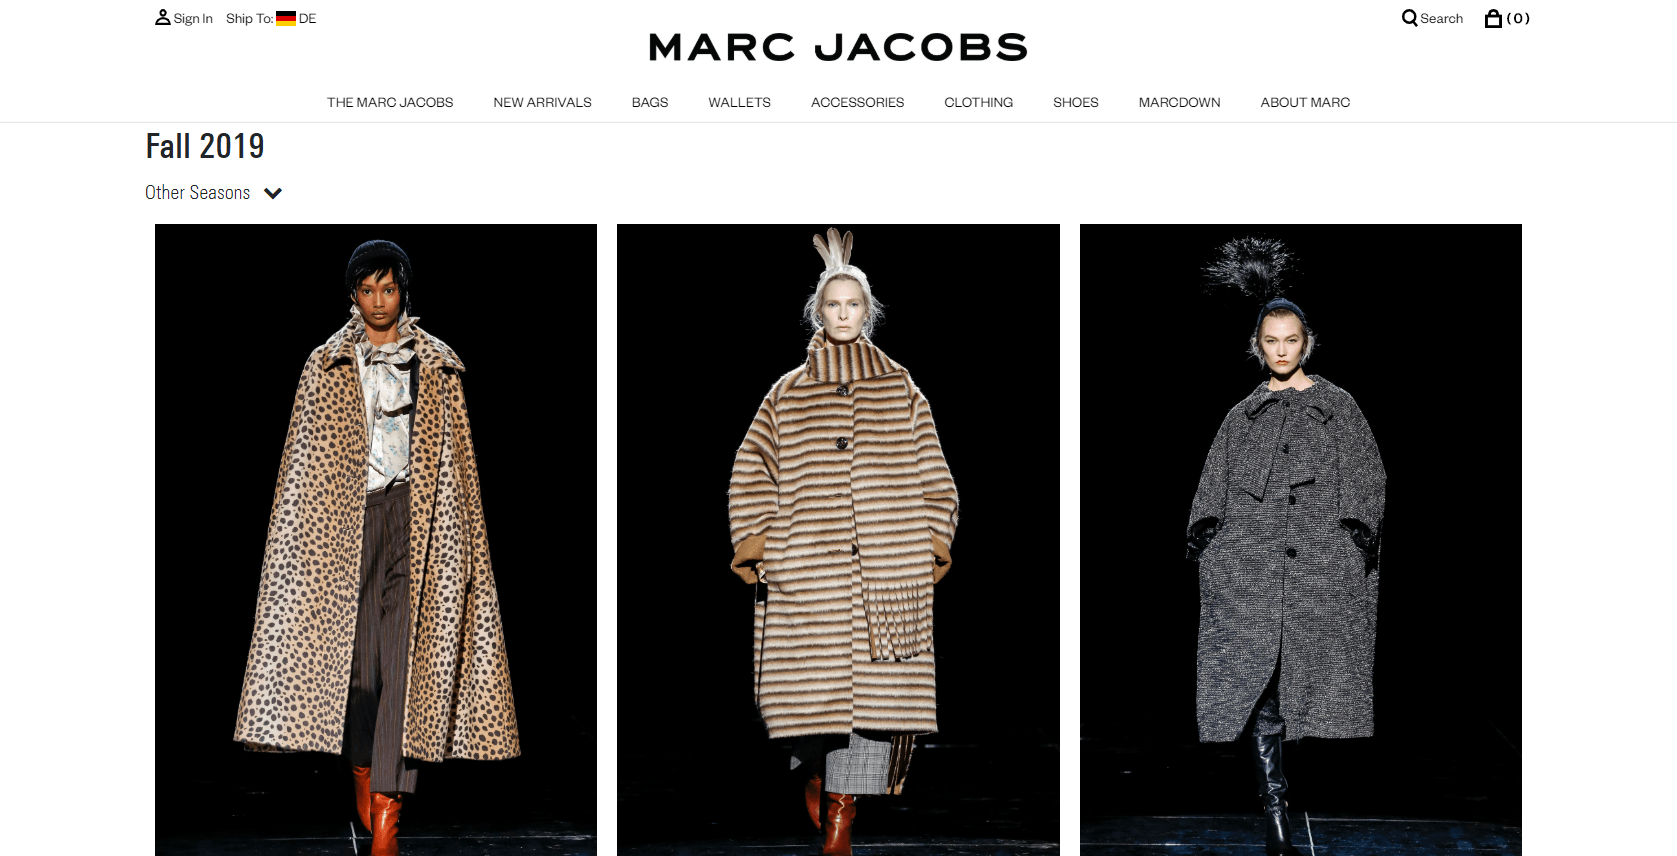 Content Marketing Marc Jacobs